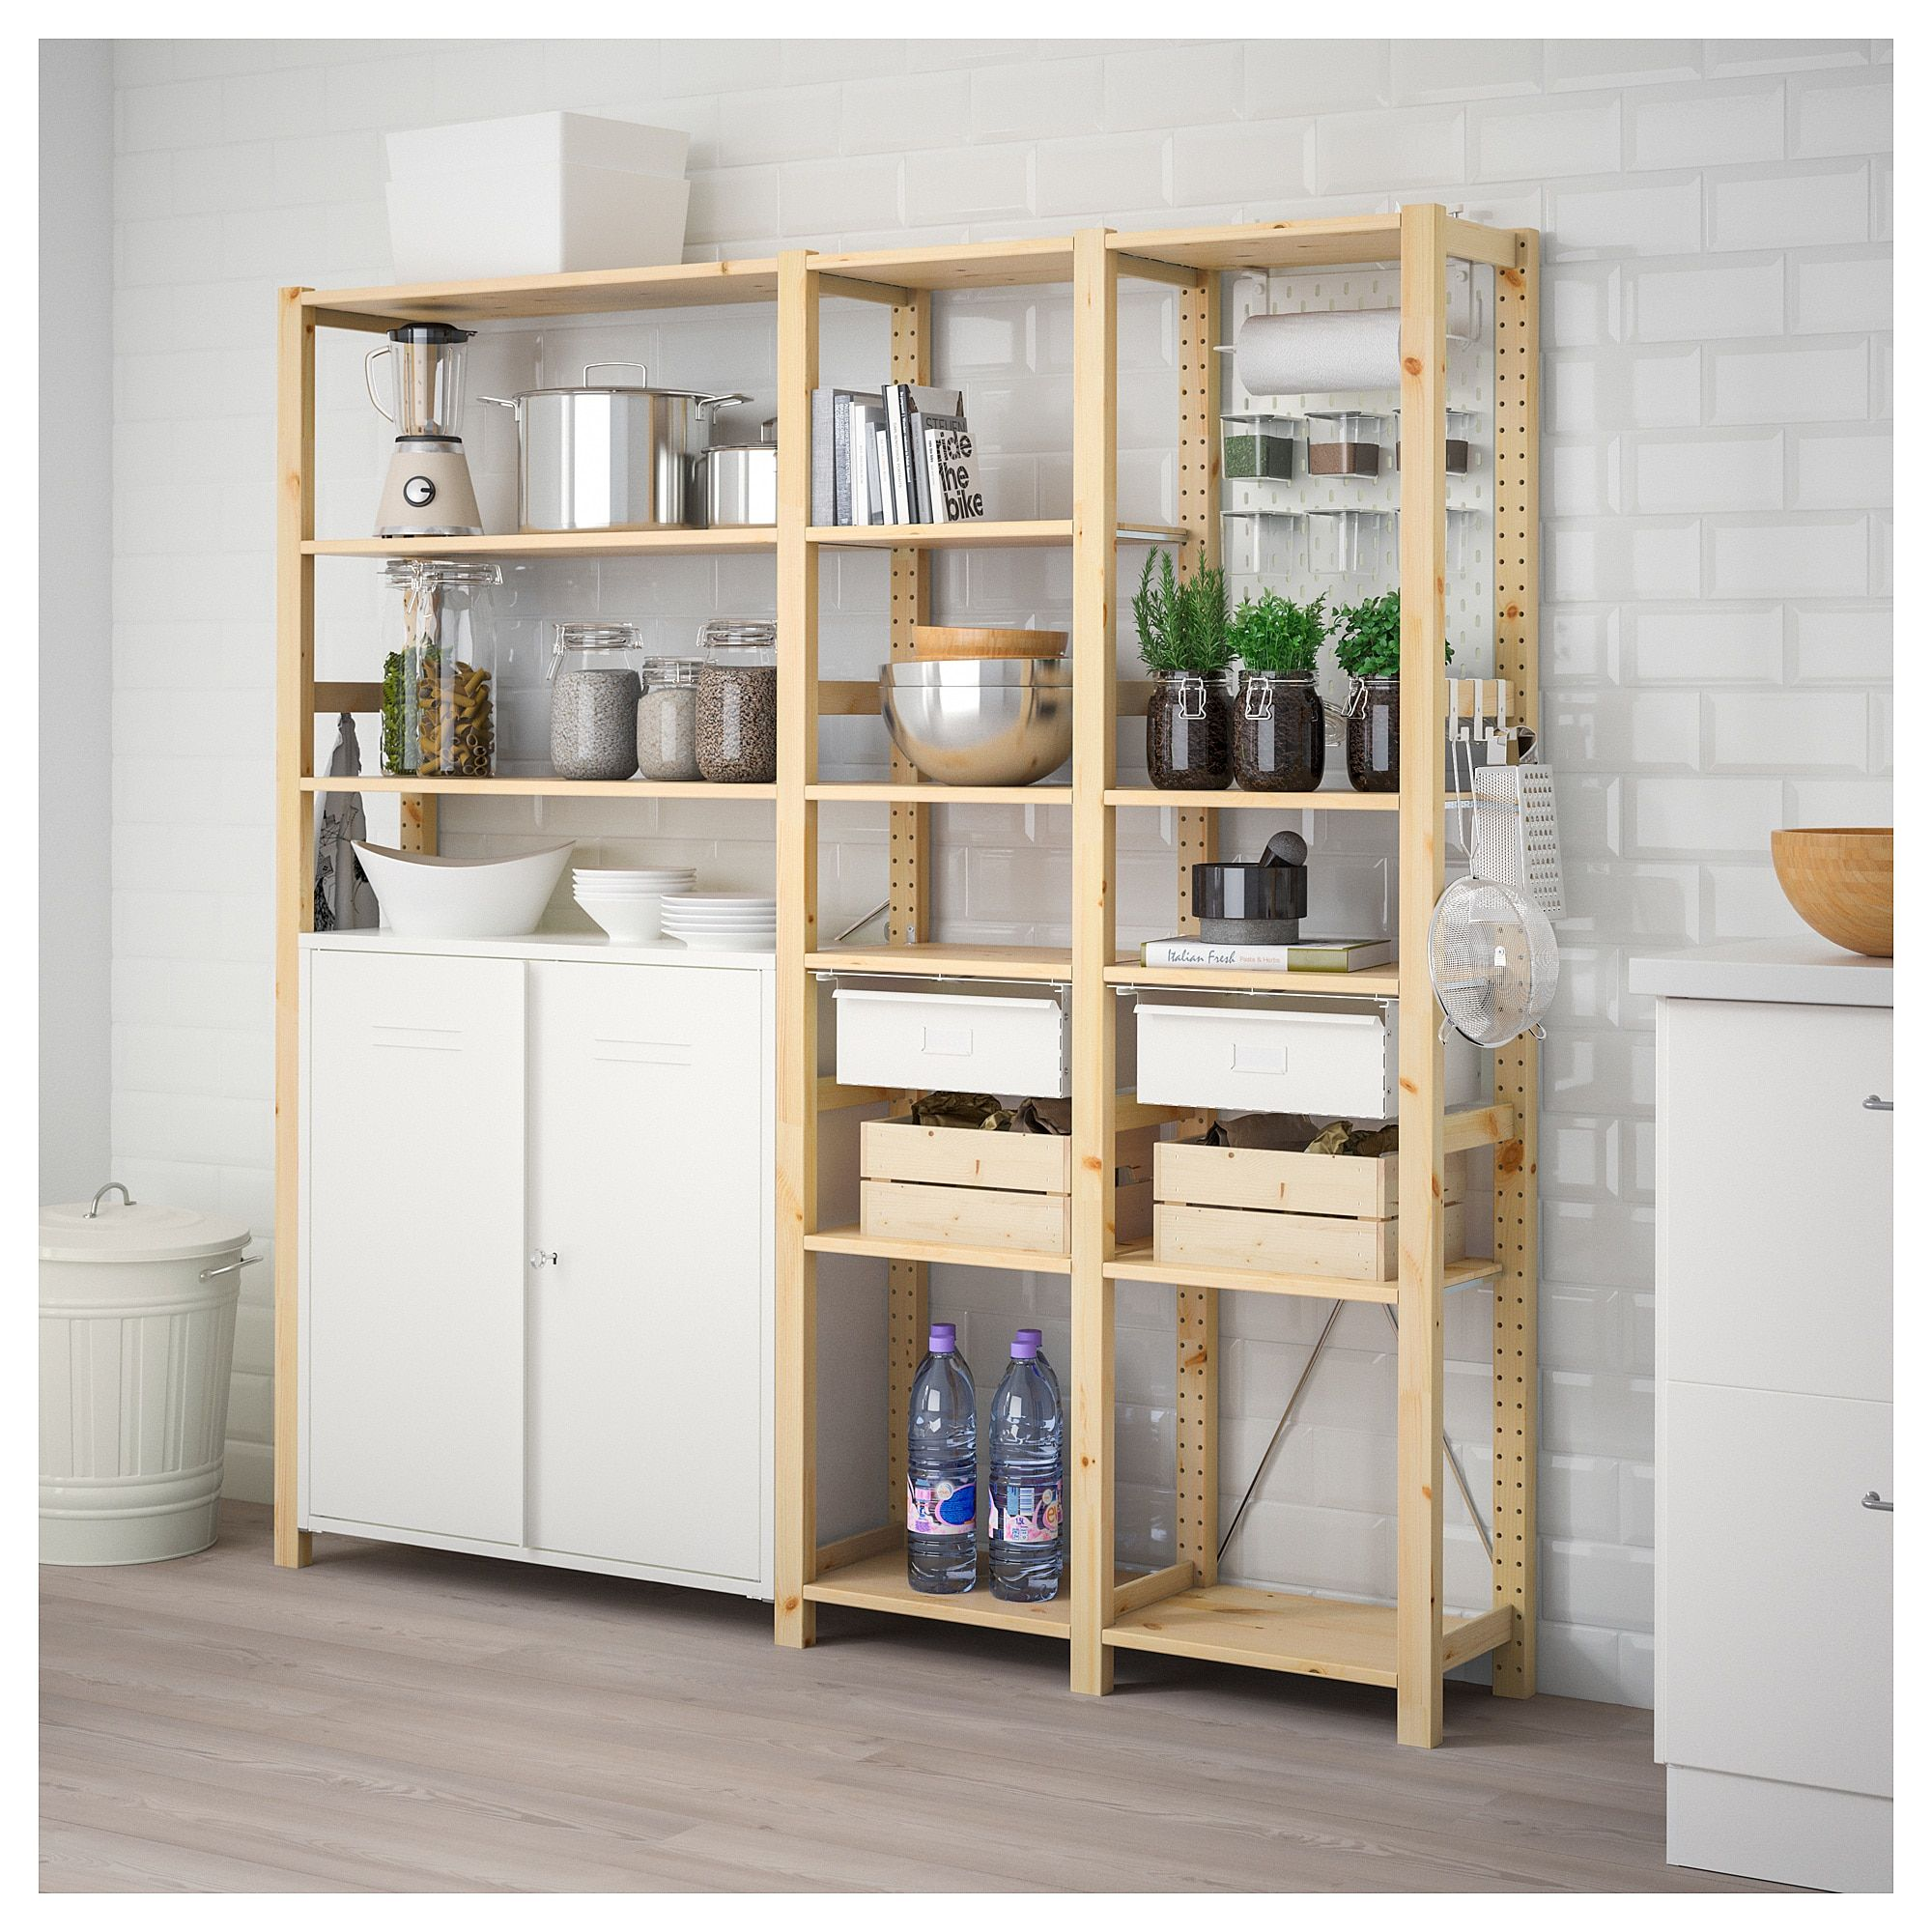 ivar 3 elem schrank kommode kiefer wei in 2019 ikea regal kommode kiefer und ivar regal